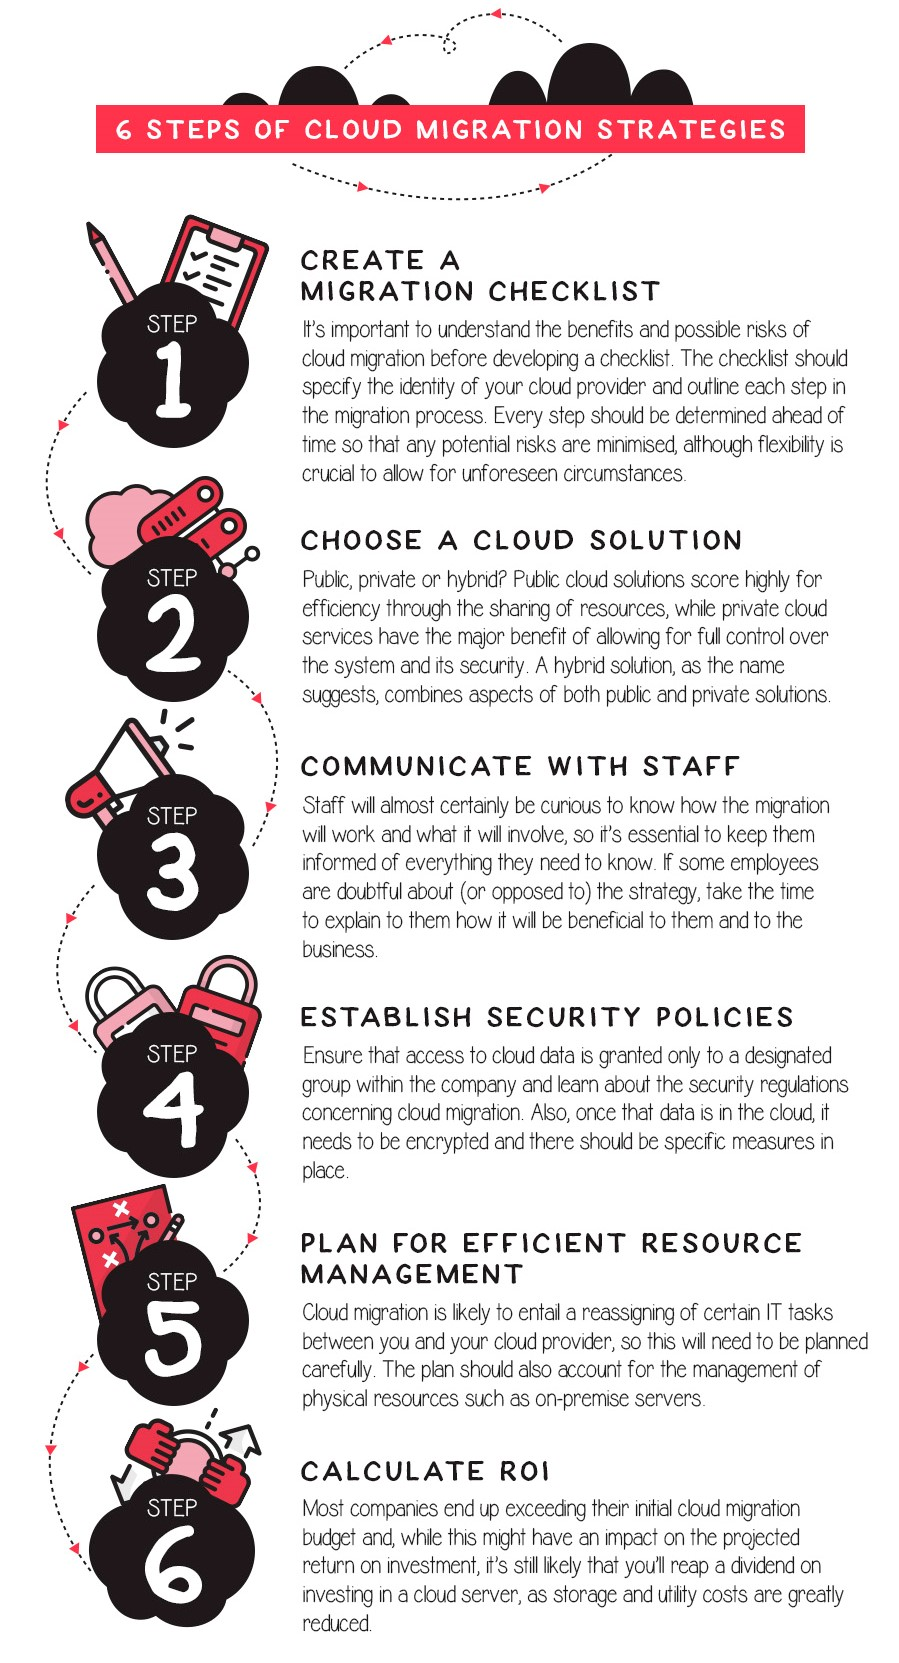 It's essential to have an effective cloud migration strategy in place in order to both minimize disruption and to remain within budget. As the below graphic outlines, there are a number of key steps you can follow to ensure a smooth transition.